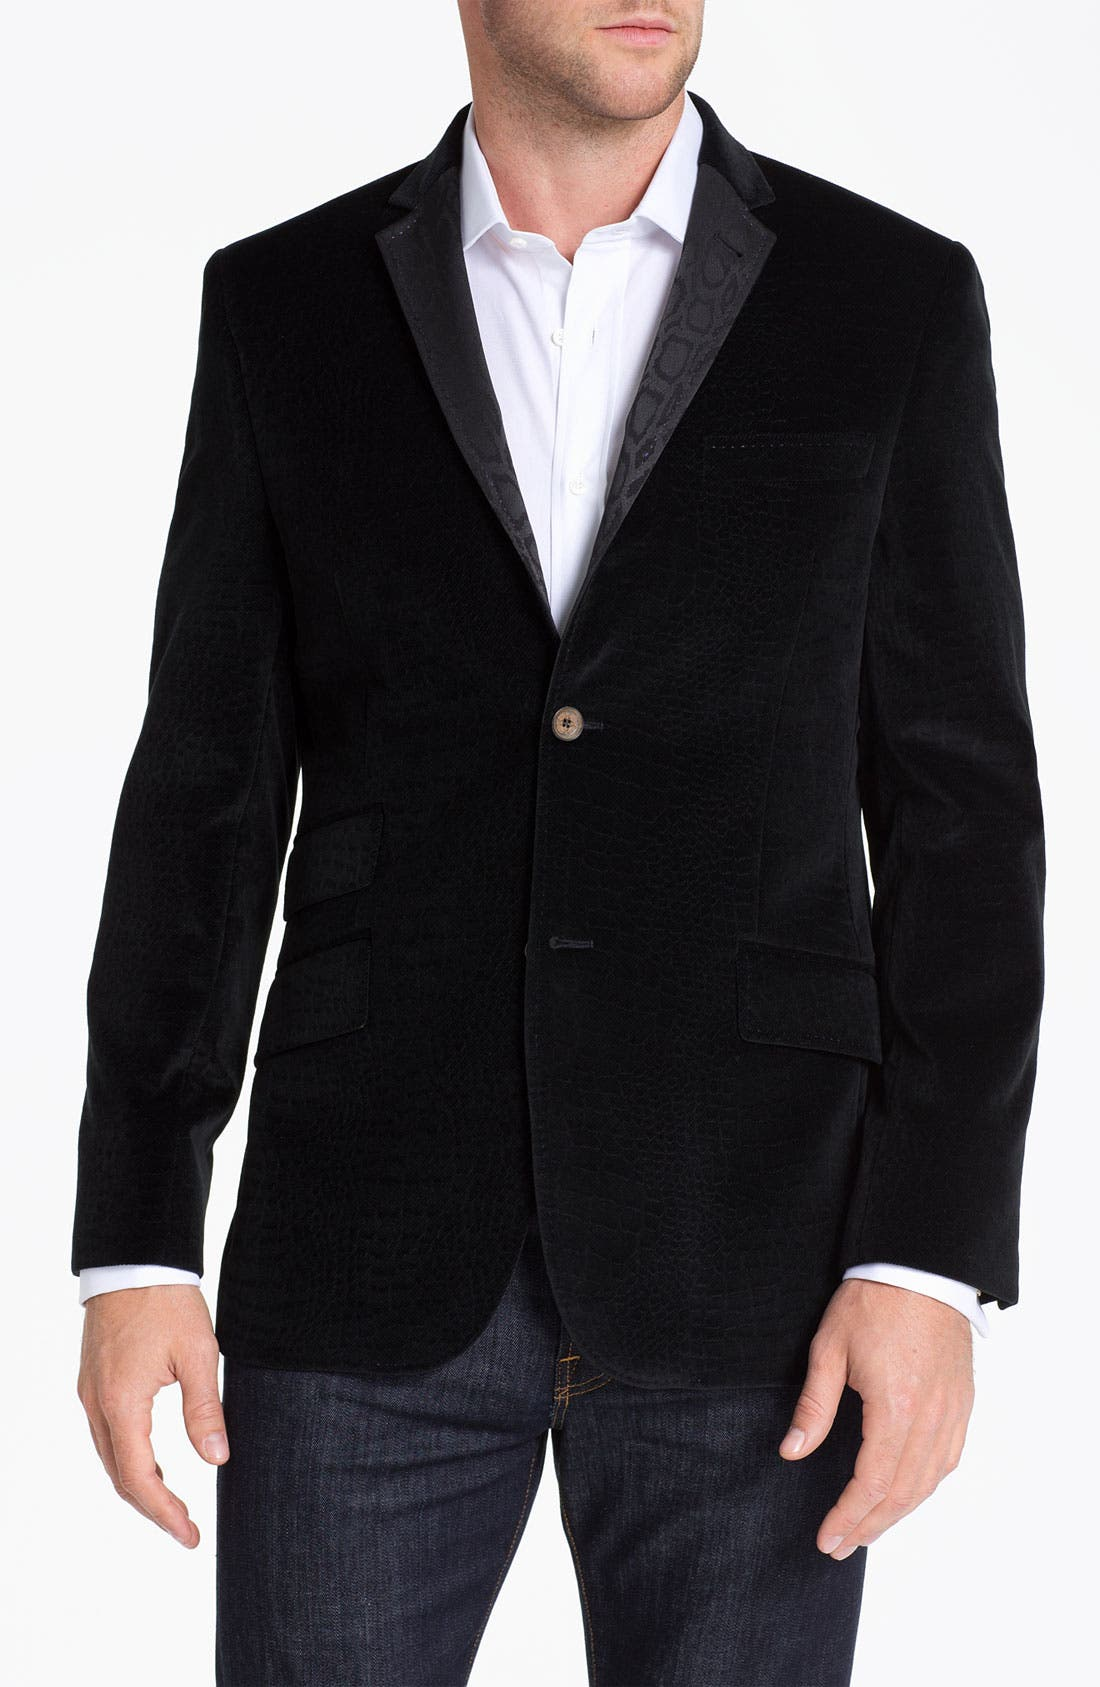 Main Image - Ted Baker London 'Global' Trim Fit Textured Sportcoat